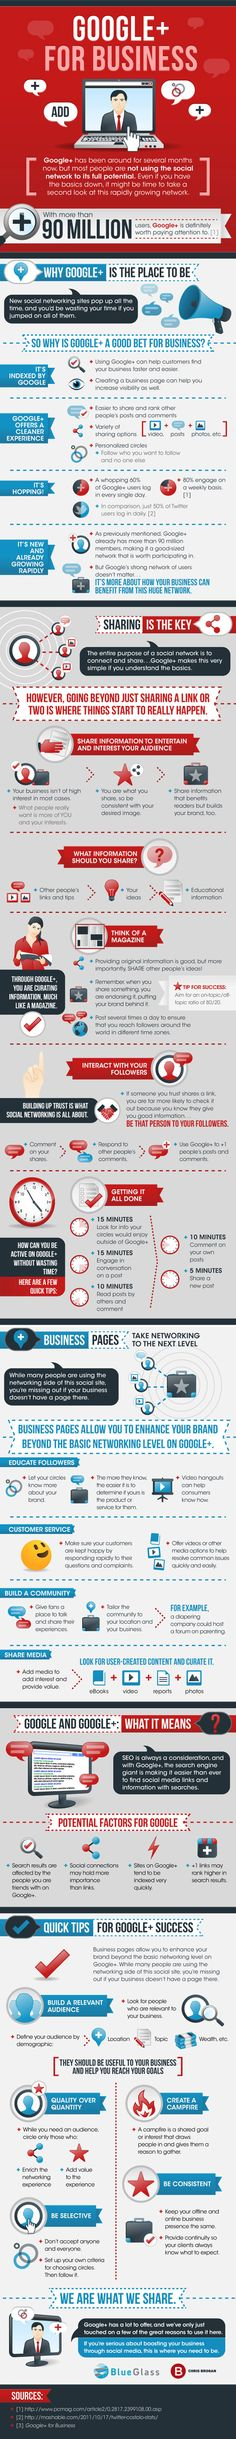 Small Business Marketing on Google Plus is Legit! How To [ #Infographic ]